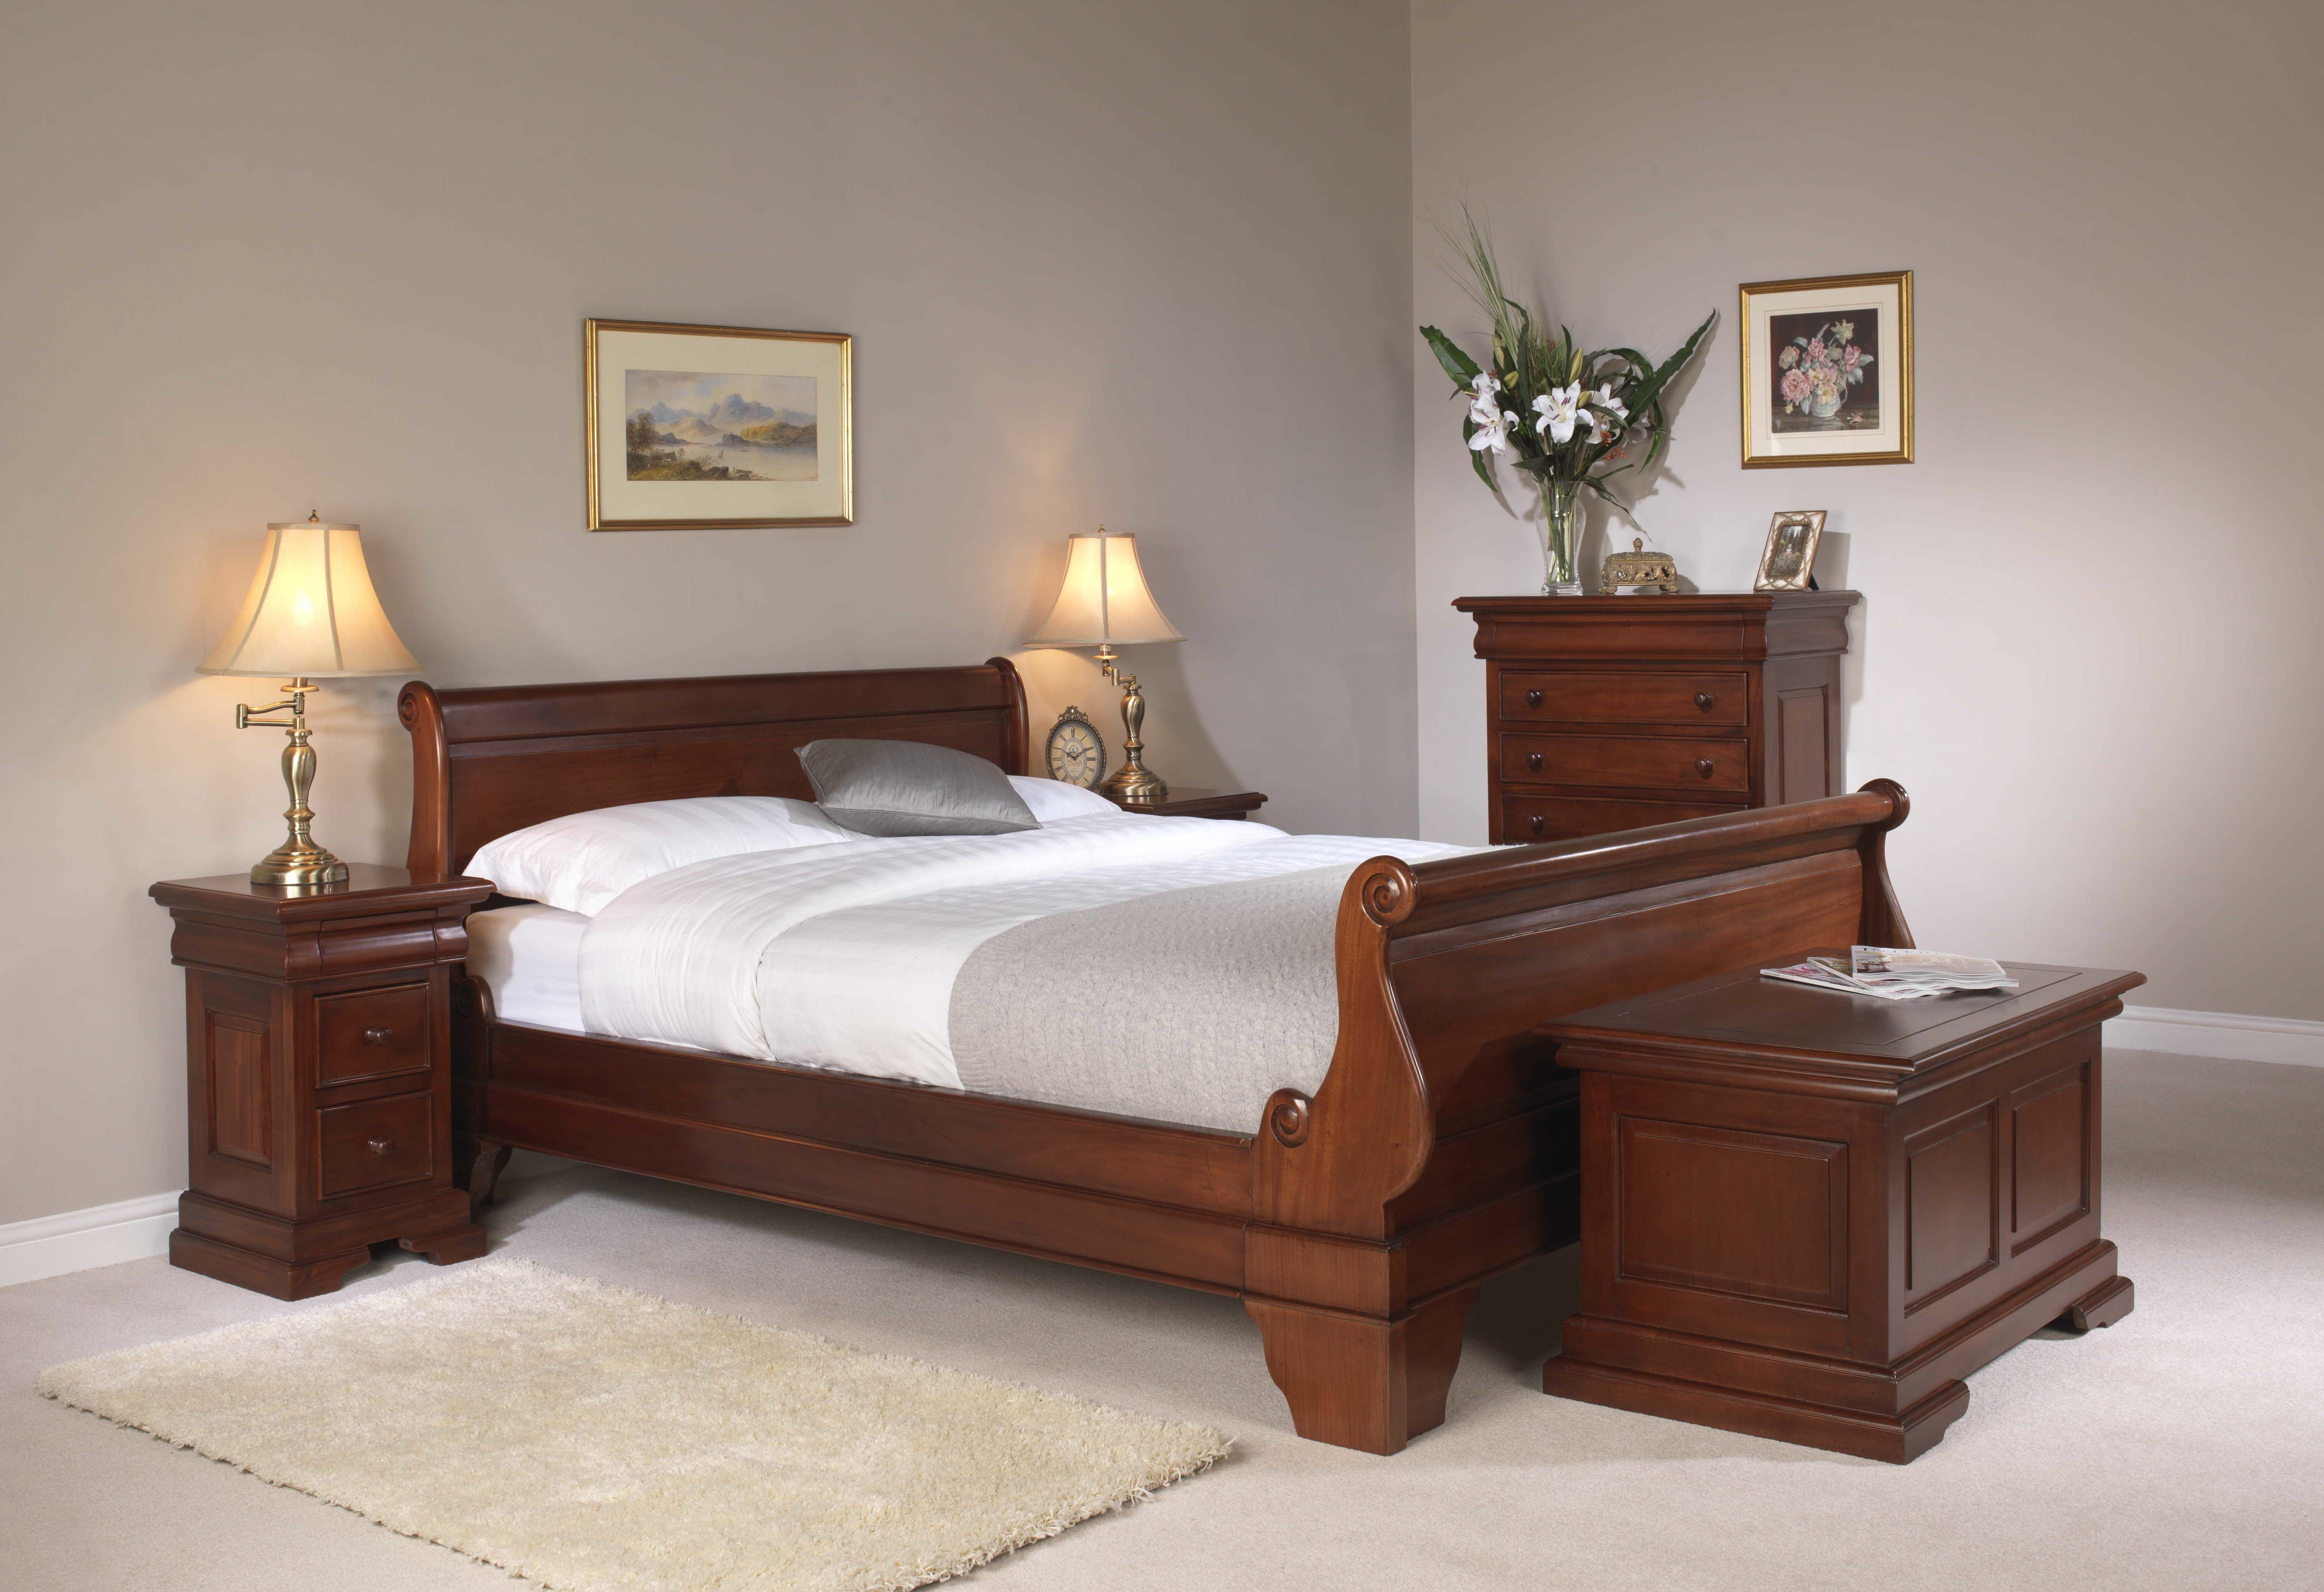 black bed b dfw in online delivery products coaster discount beds color store discounted furniture index twin upholstered free